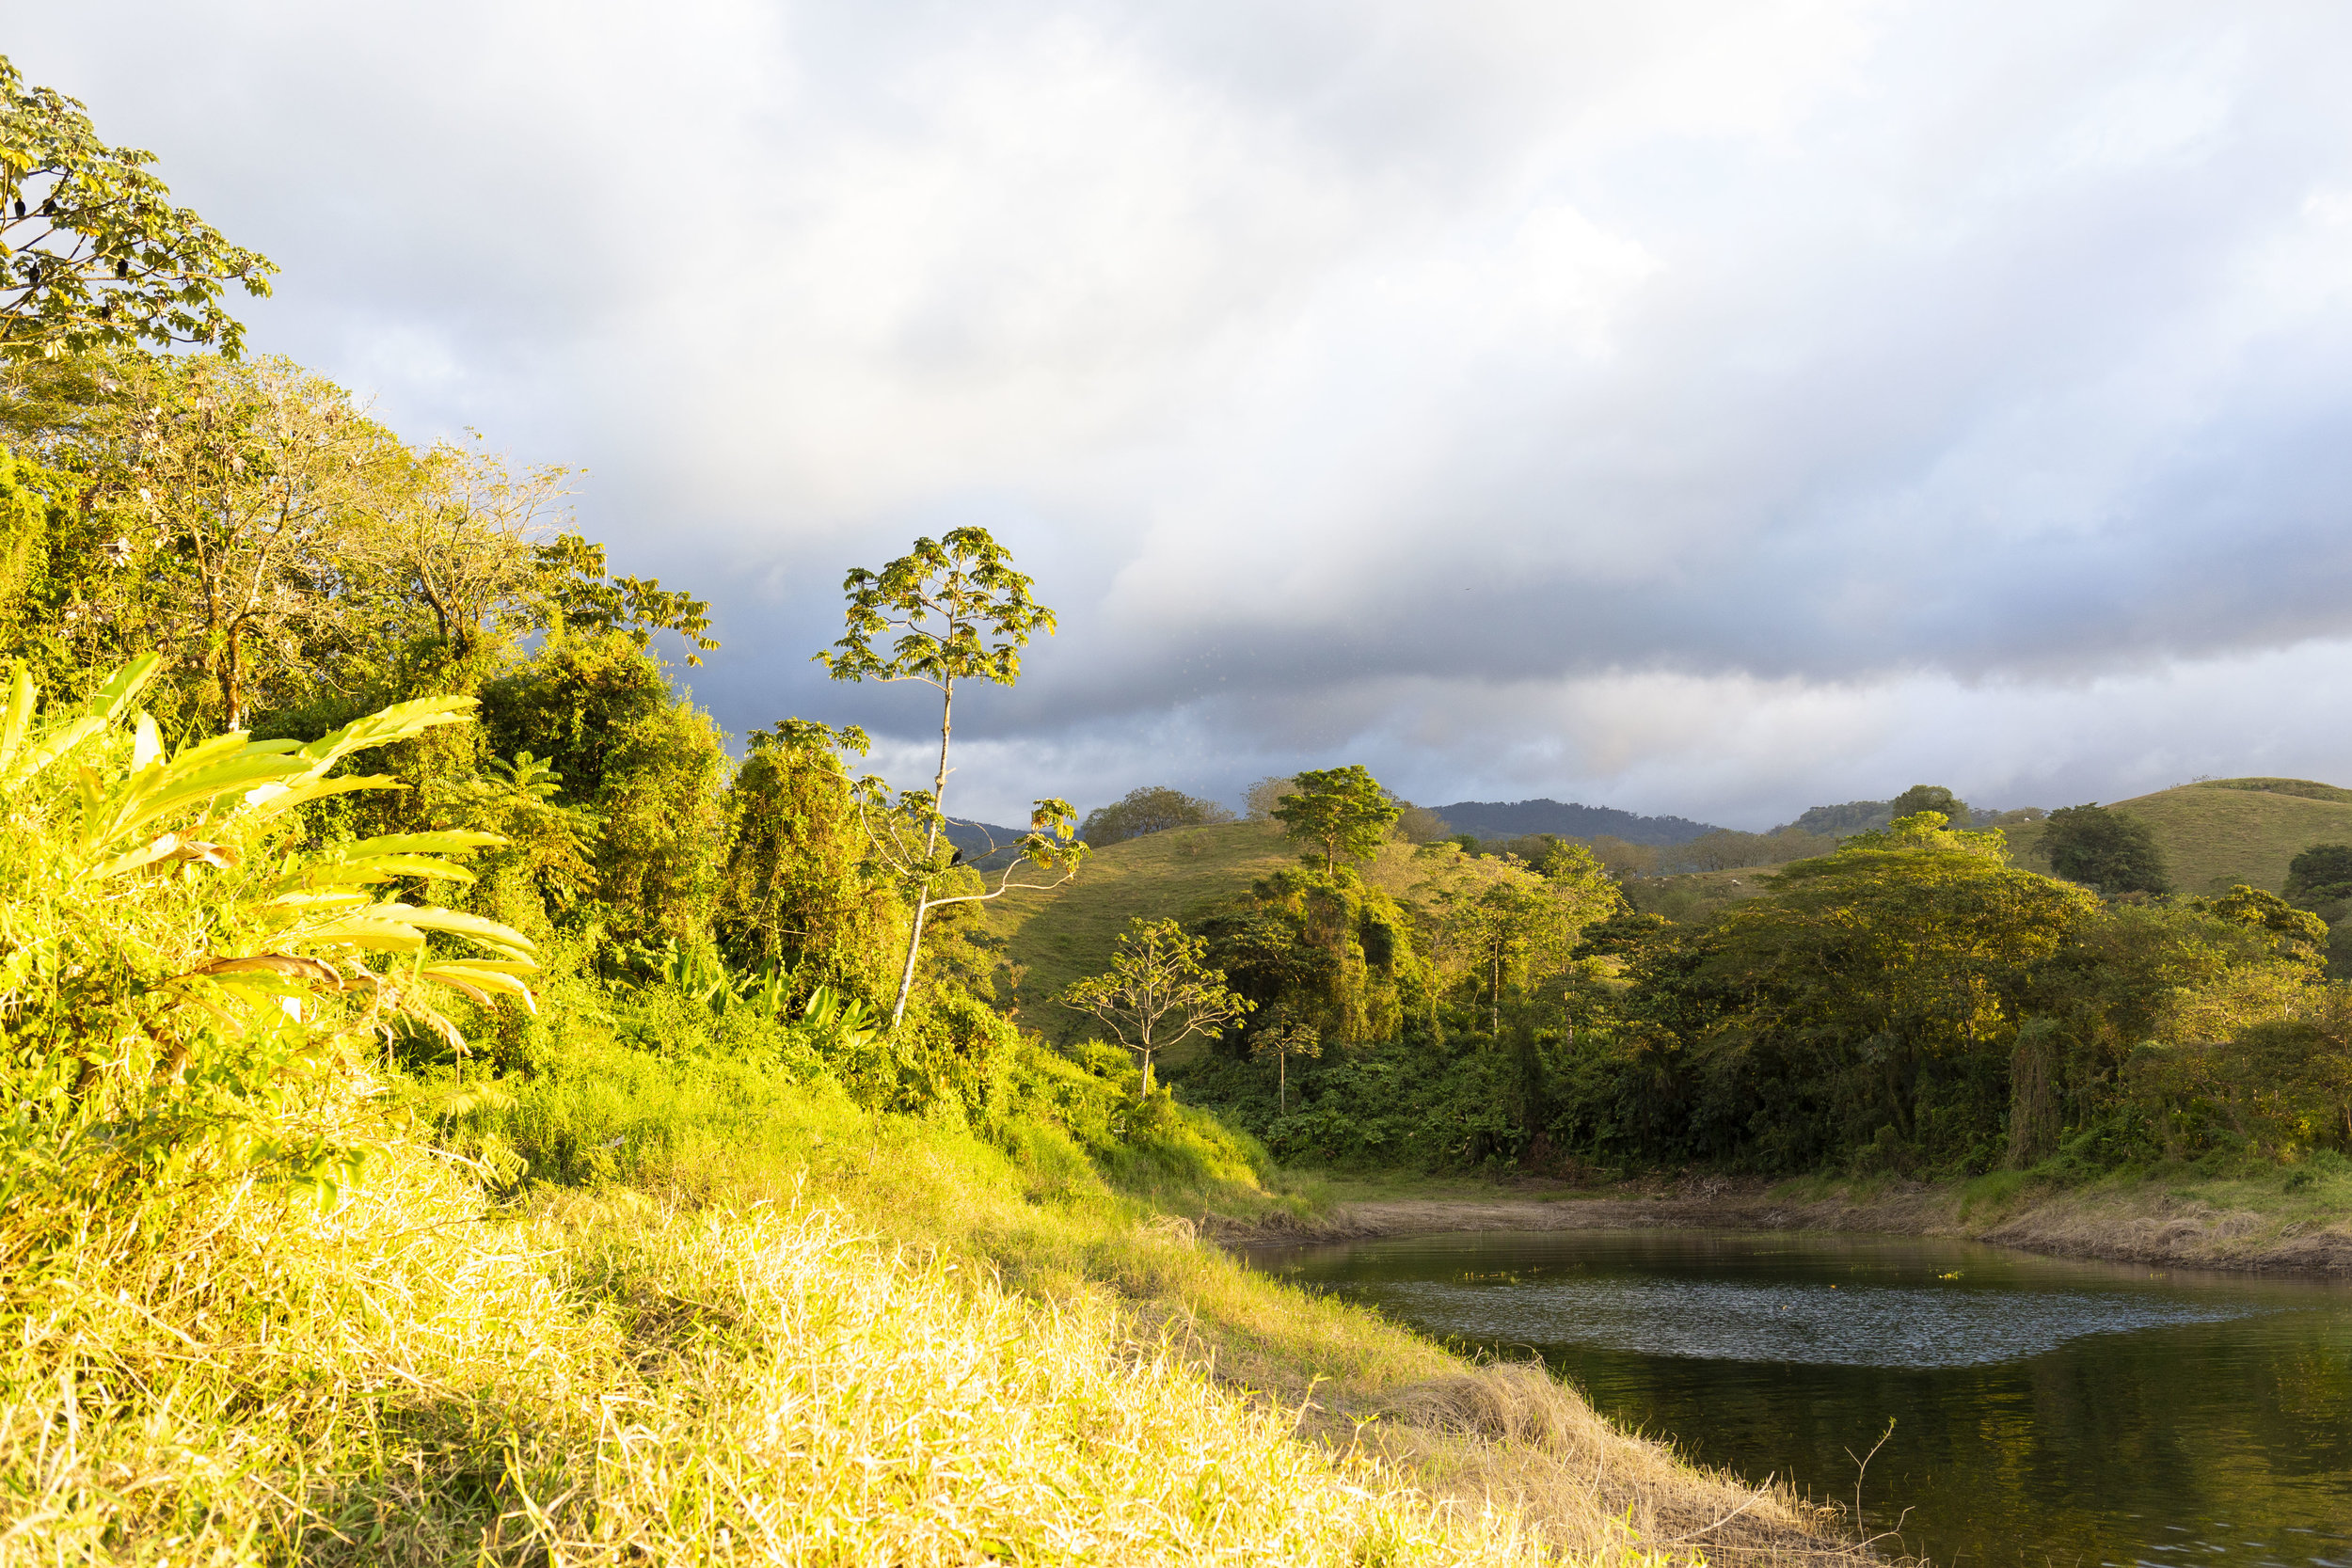 The view from the walk around Lake Arenal (close to the boat ramp) in El Castillo, Costa Rica.